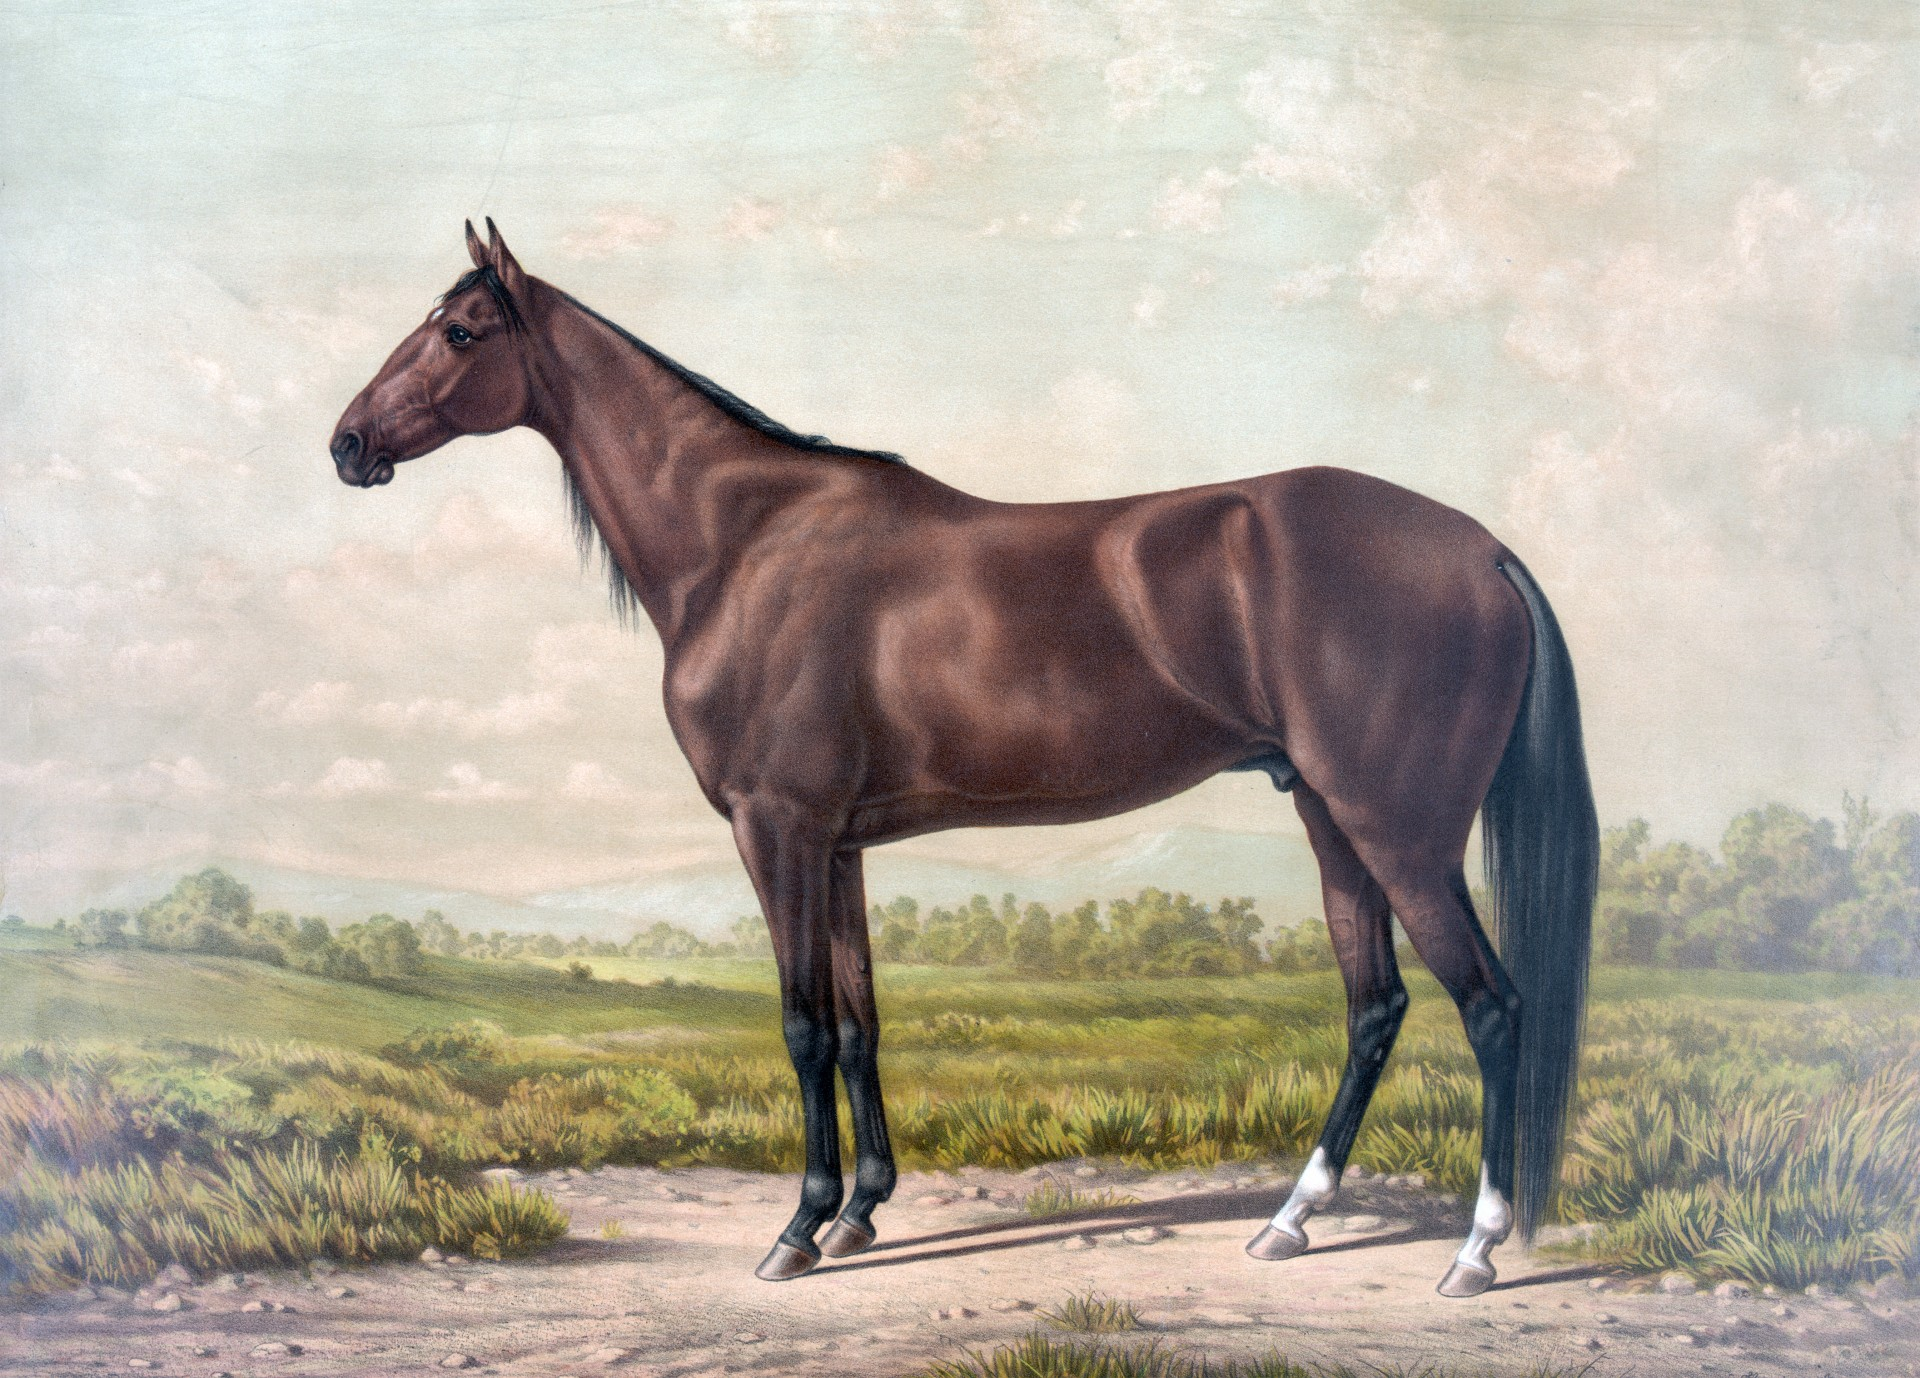 Horse Thoroughbred Vintage Painting Portrait Free Image From Needpix Com